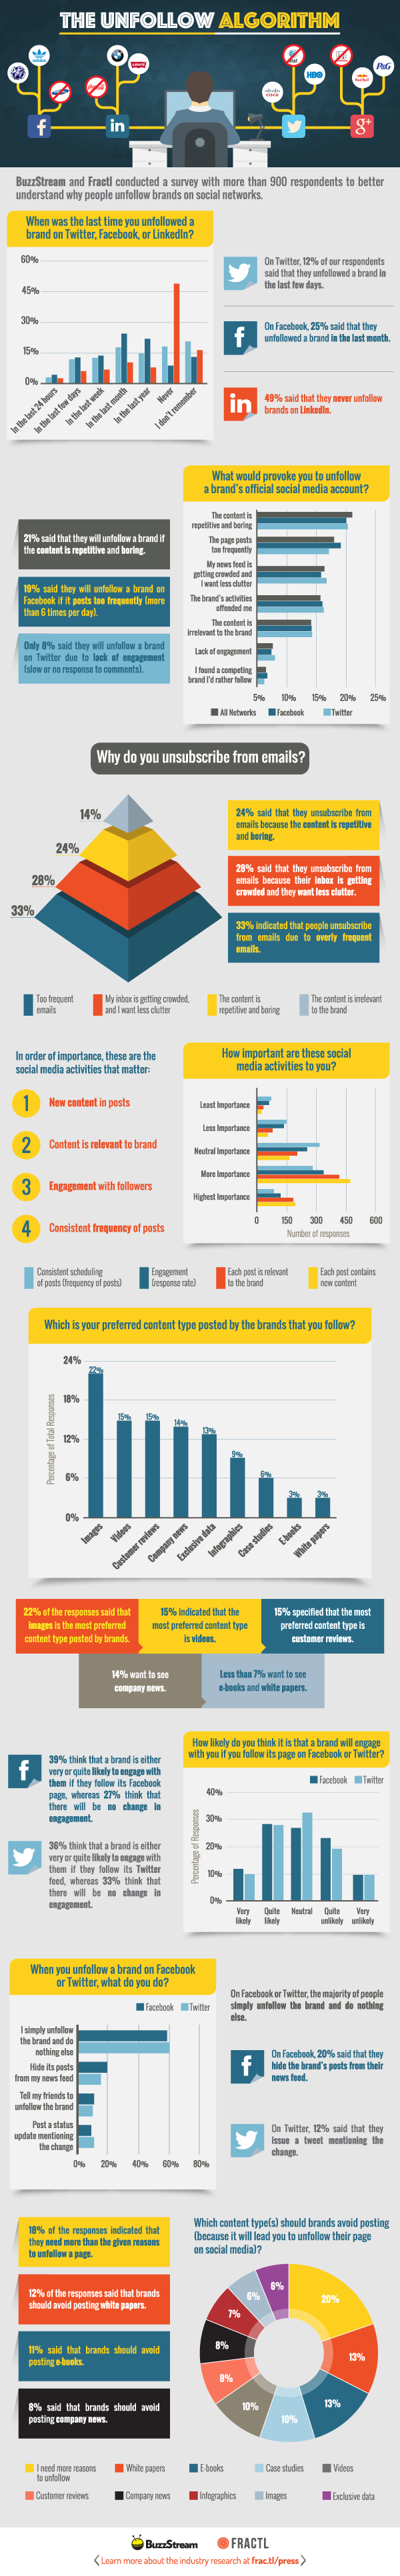 Why People Unfollow Brands on Social Media [Infographic]